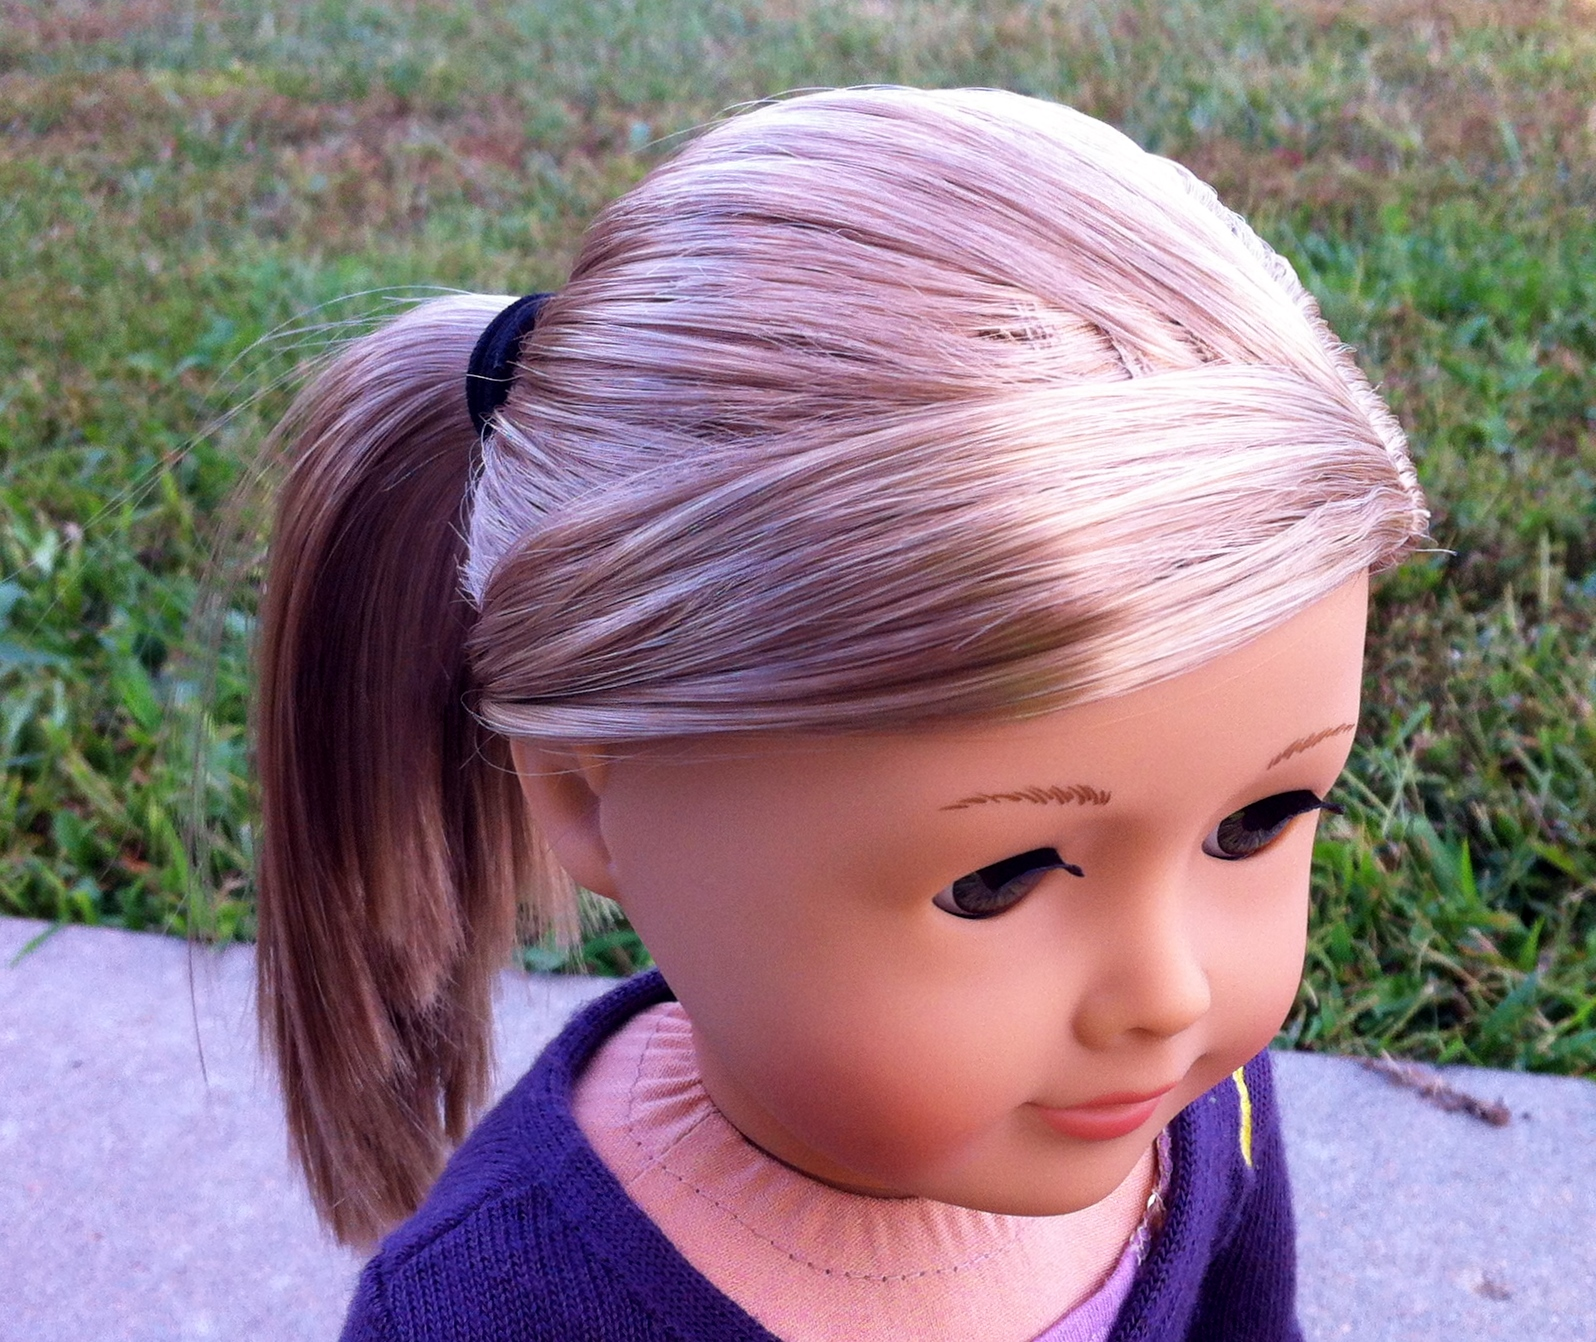 hairstyle: isabelle's bangs | small dolls in a big world